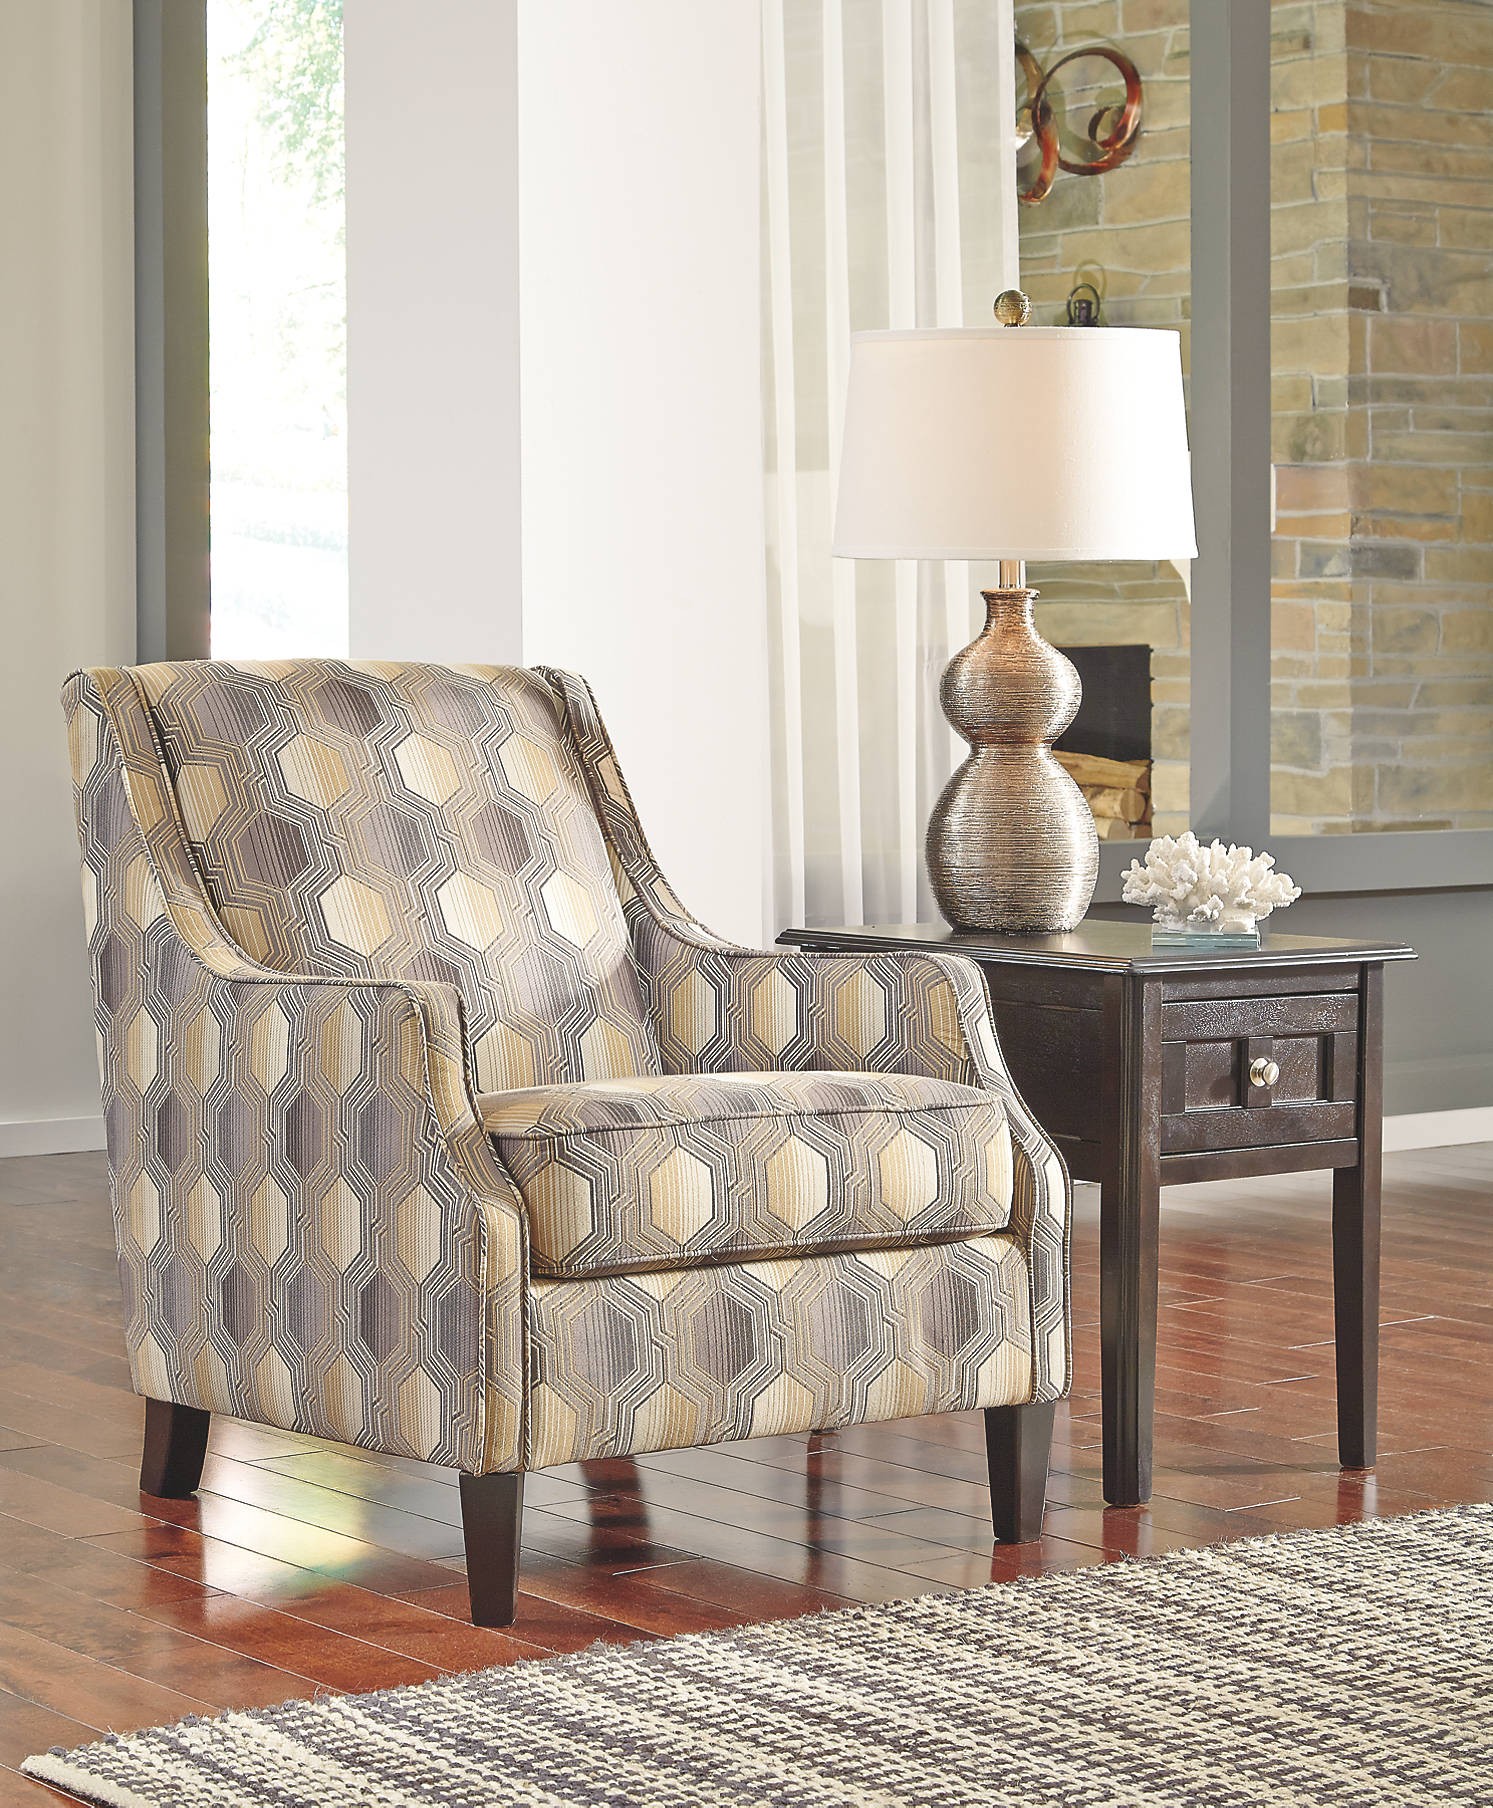 Recliner And Accent Chairs New Image Furniture Leasing